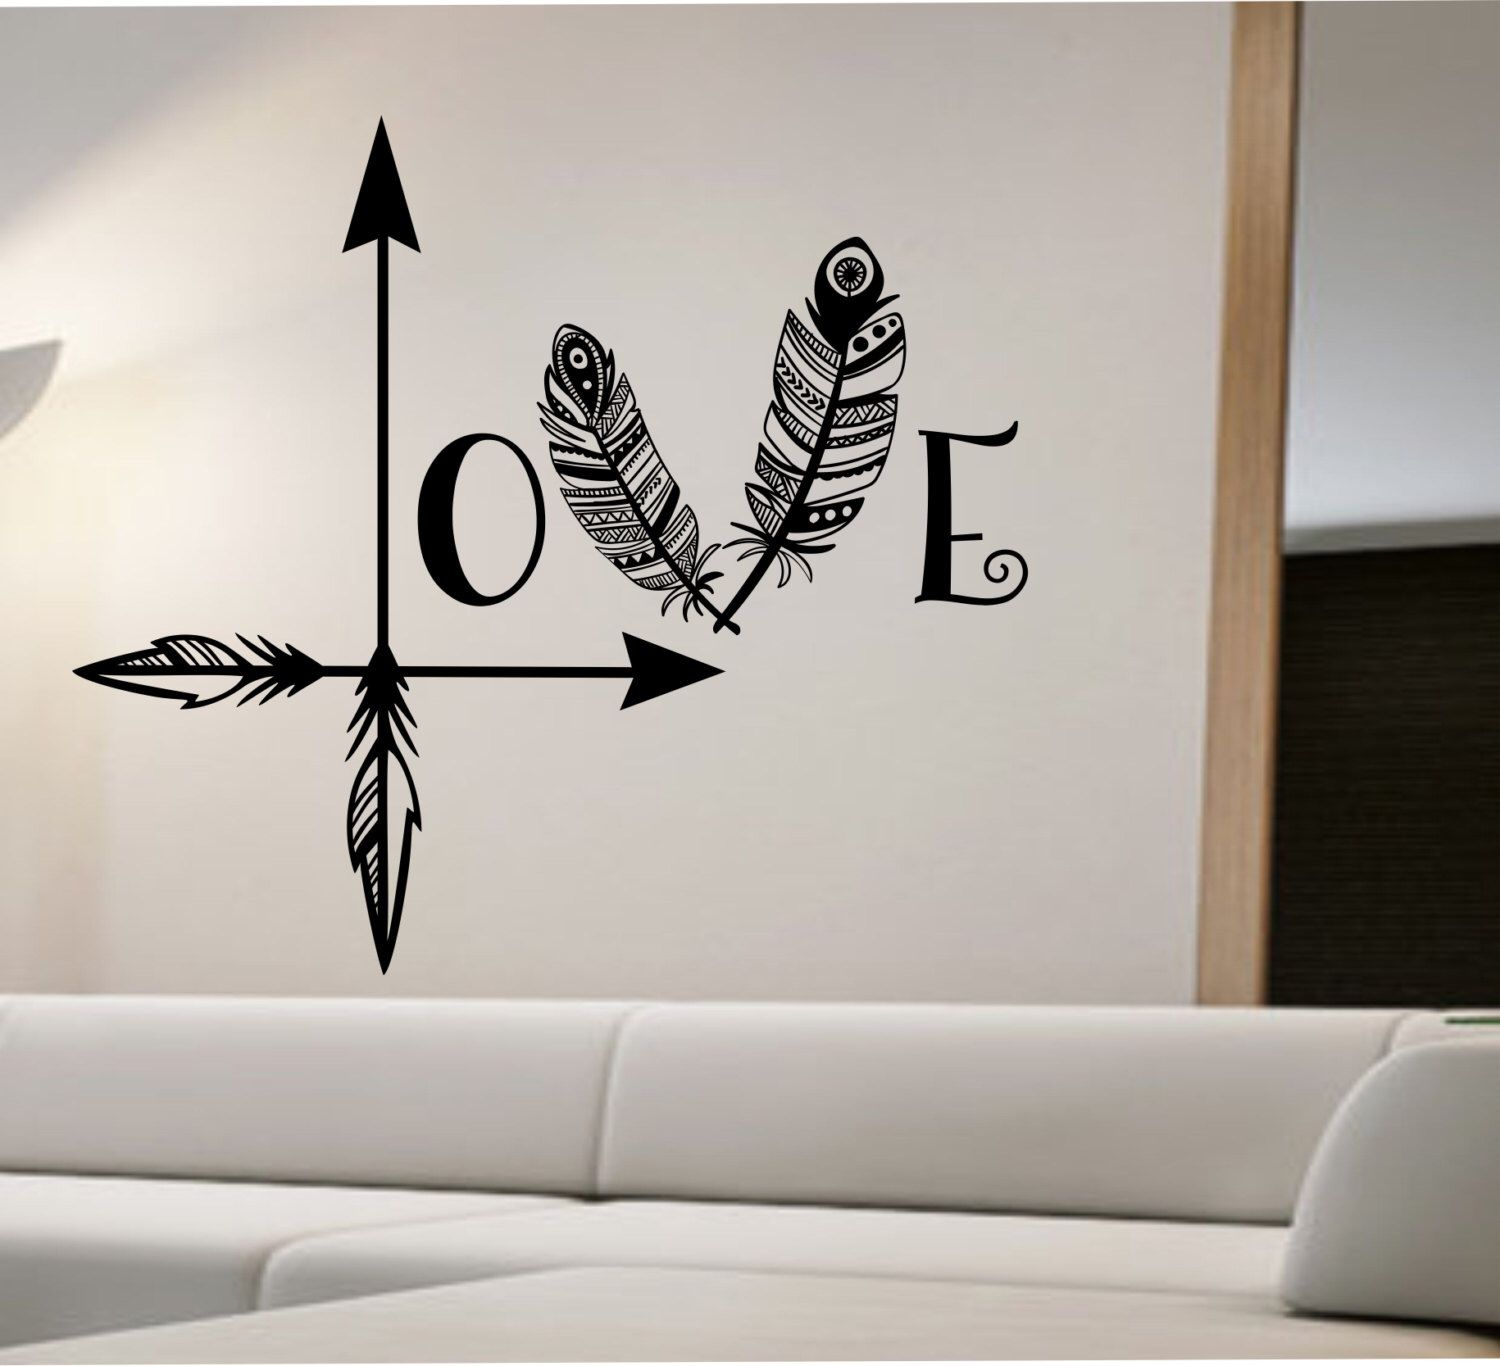 Arrow feather love wall decal namaste vinyl sticker art decor arrow feather love wall decal namaste vinyl sticker art decor bedroom design mural home decor room amipublicfo Gallery